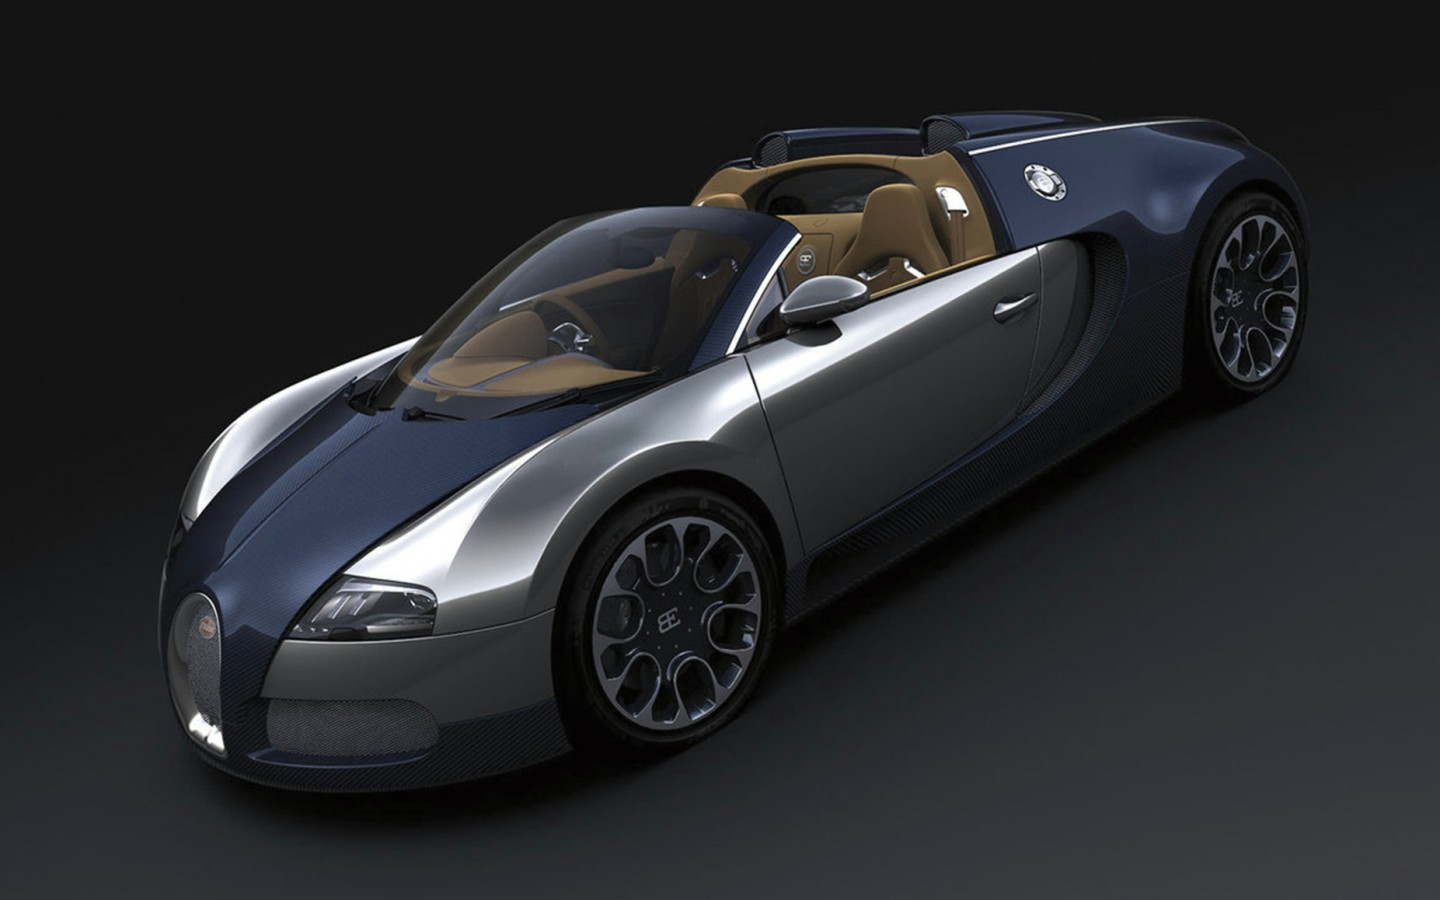 2019 Bugatti Veyron Grand Sport Sang Bleu photo - 2